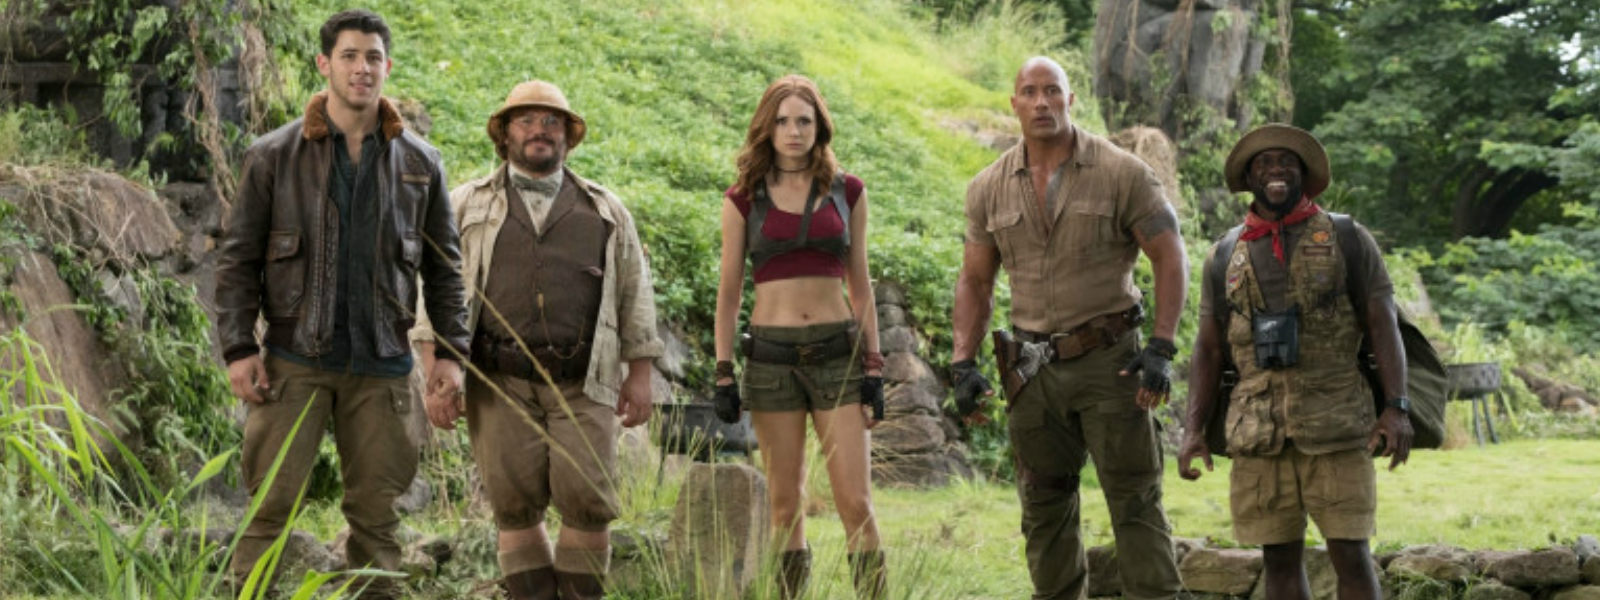 Jumanji cast face their fears in latest sequel